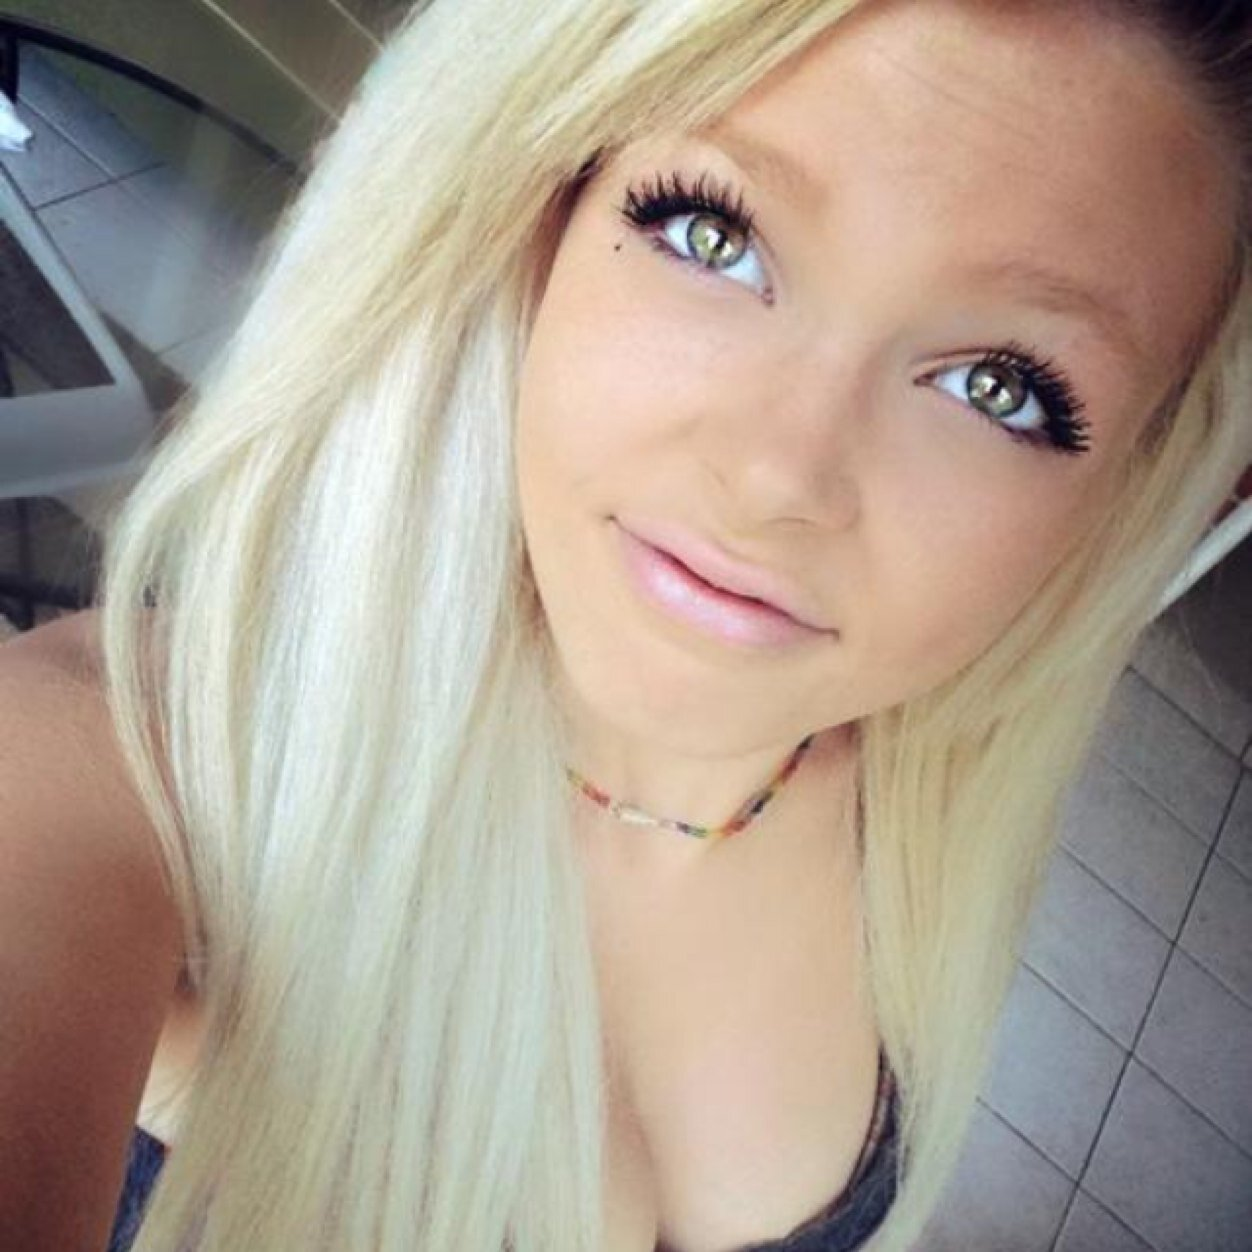 Teen beauty from twitter fucked on first date part 2 2